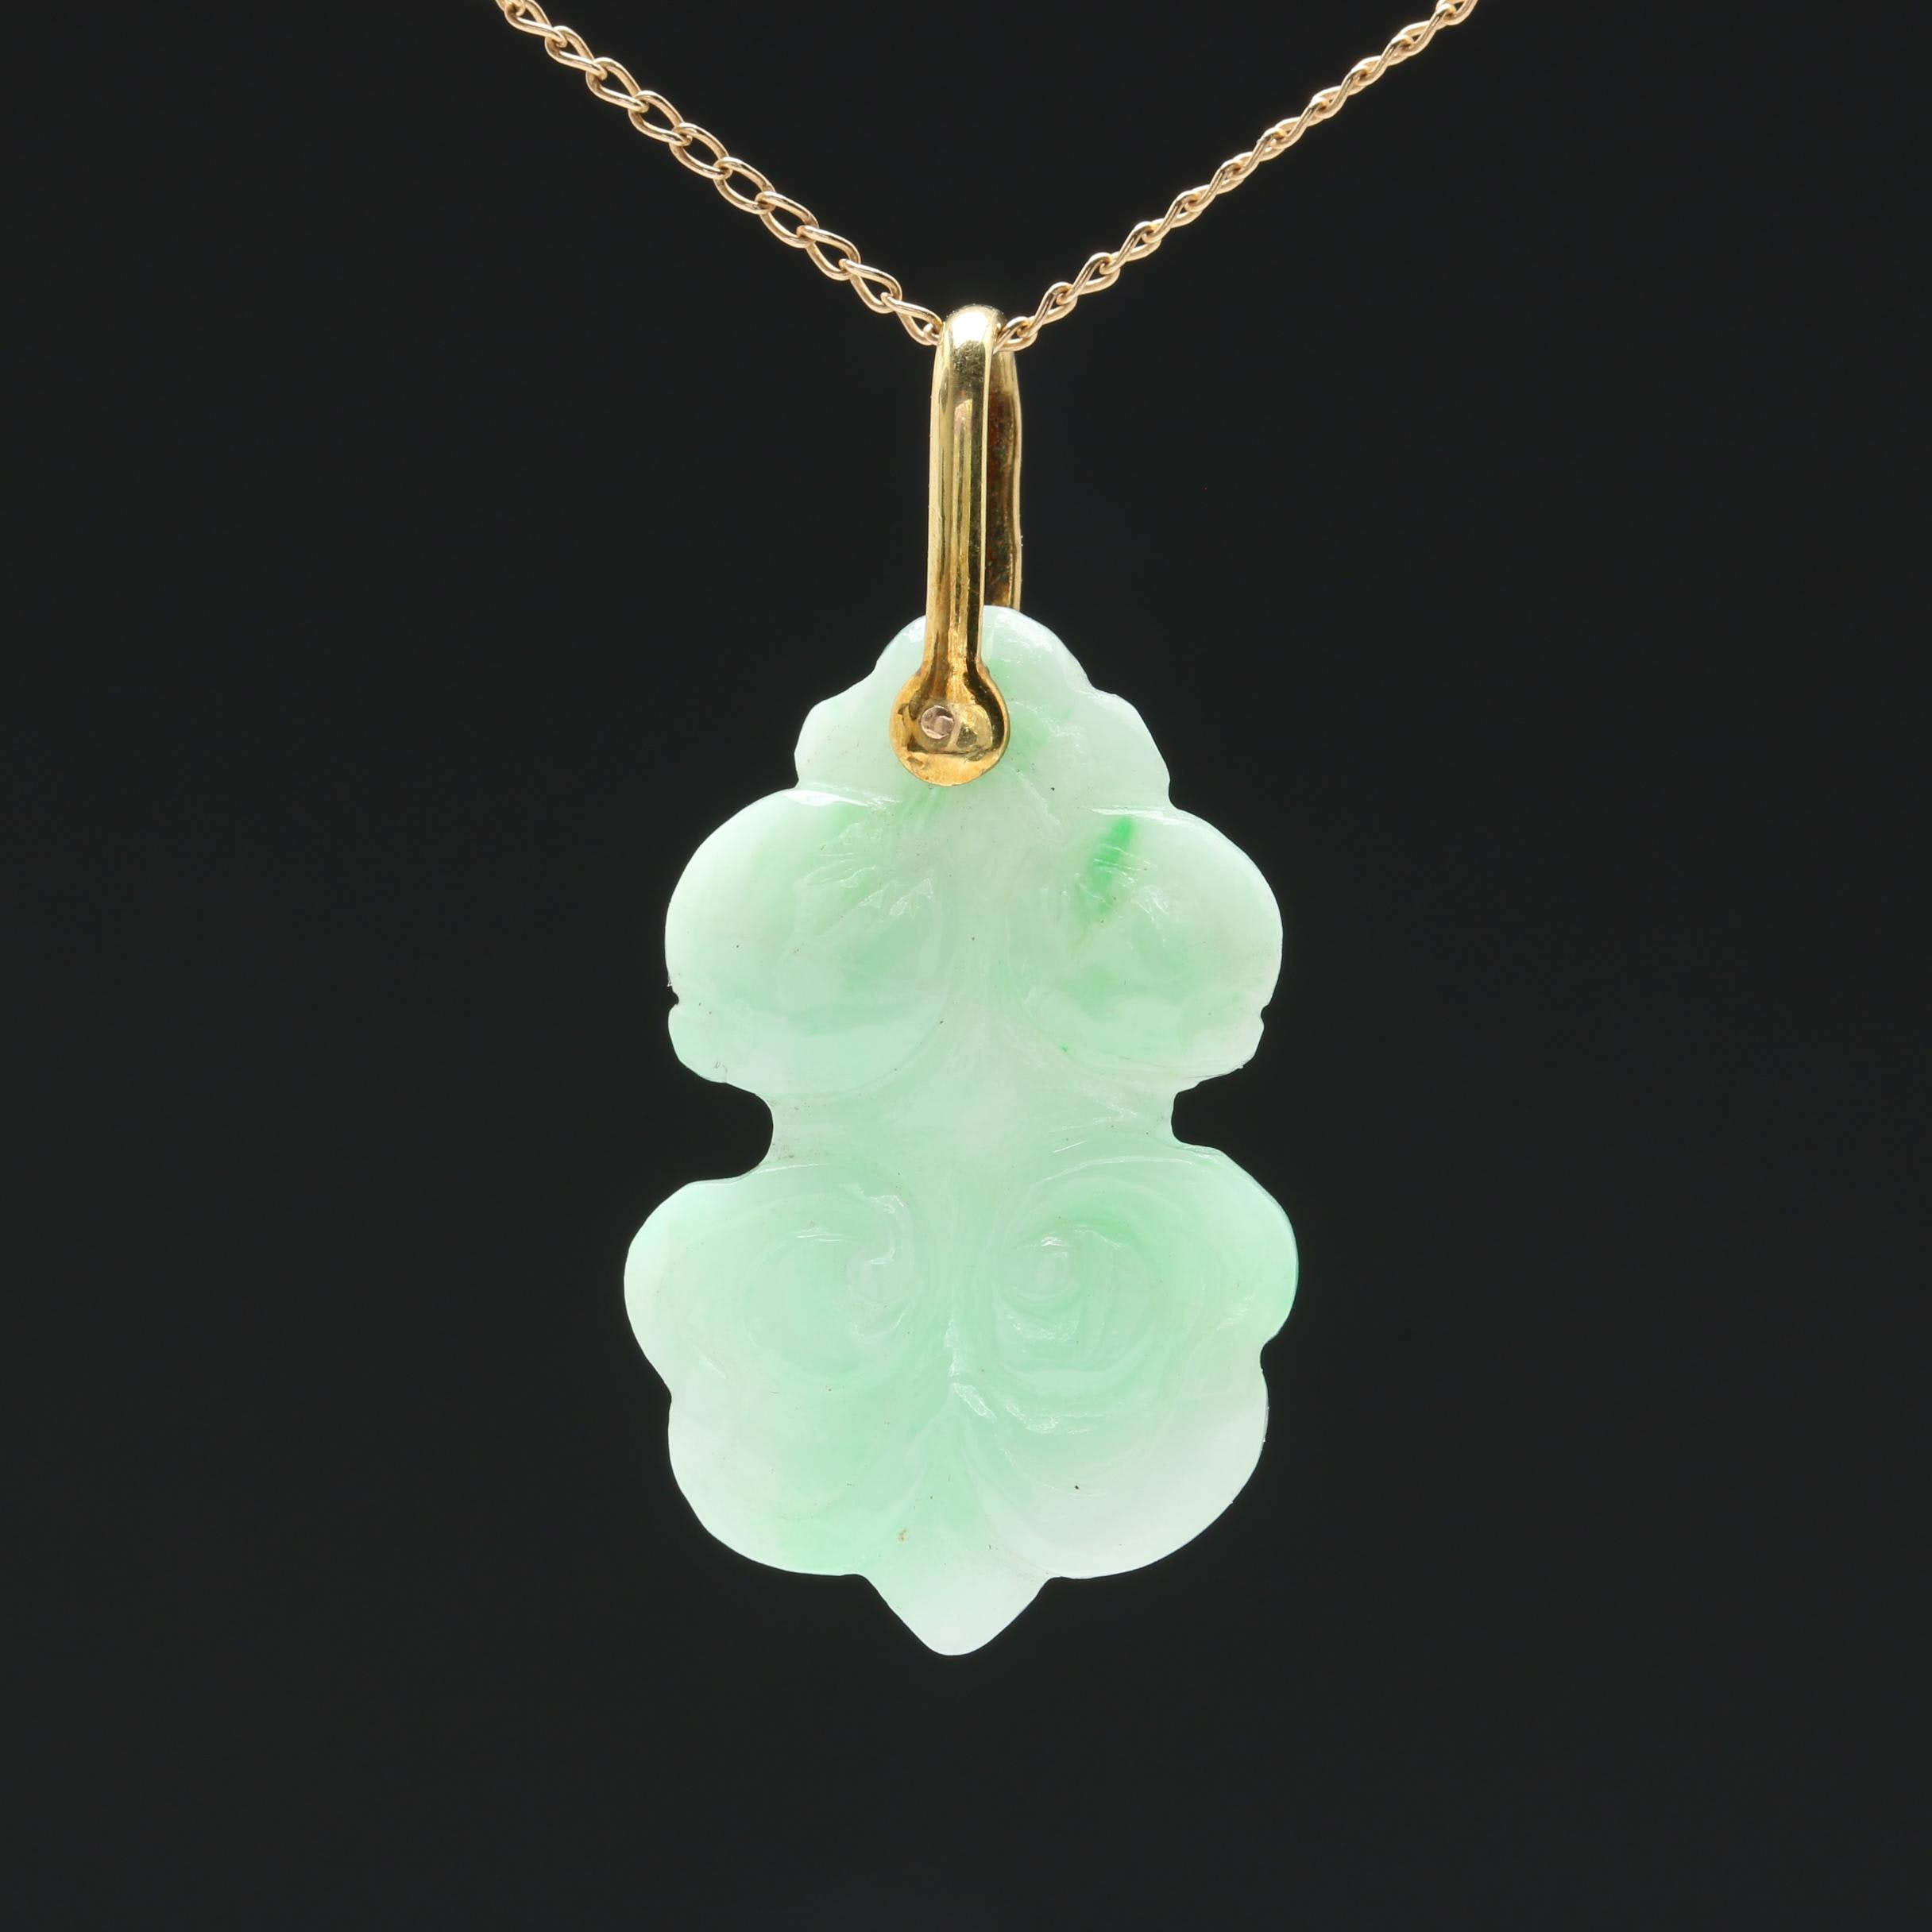 14K Yellow Gold Carved Jadeite Pendant Necklace